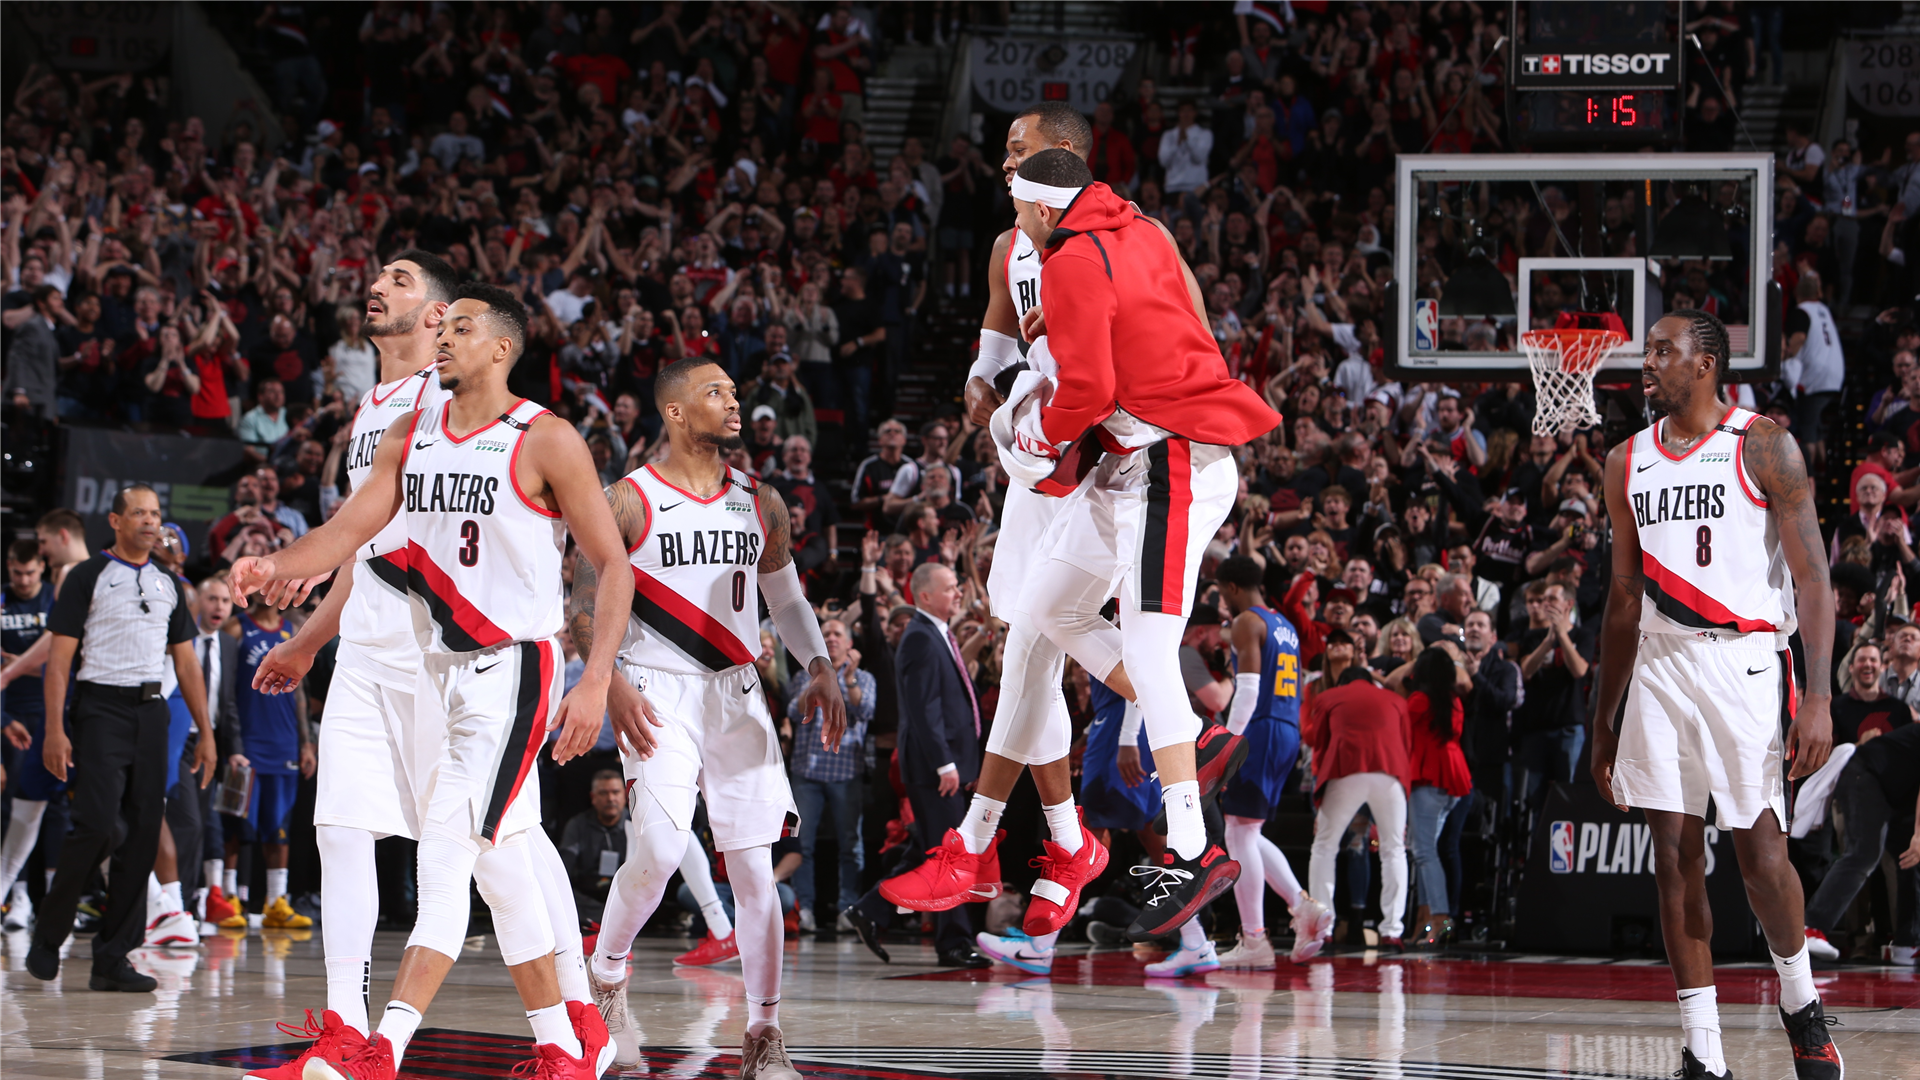 Nba Playoffs 2019  Denver Nuggets Vs  Portland Trail Blazers Live Score  Updates  News  Stats